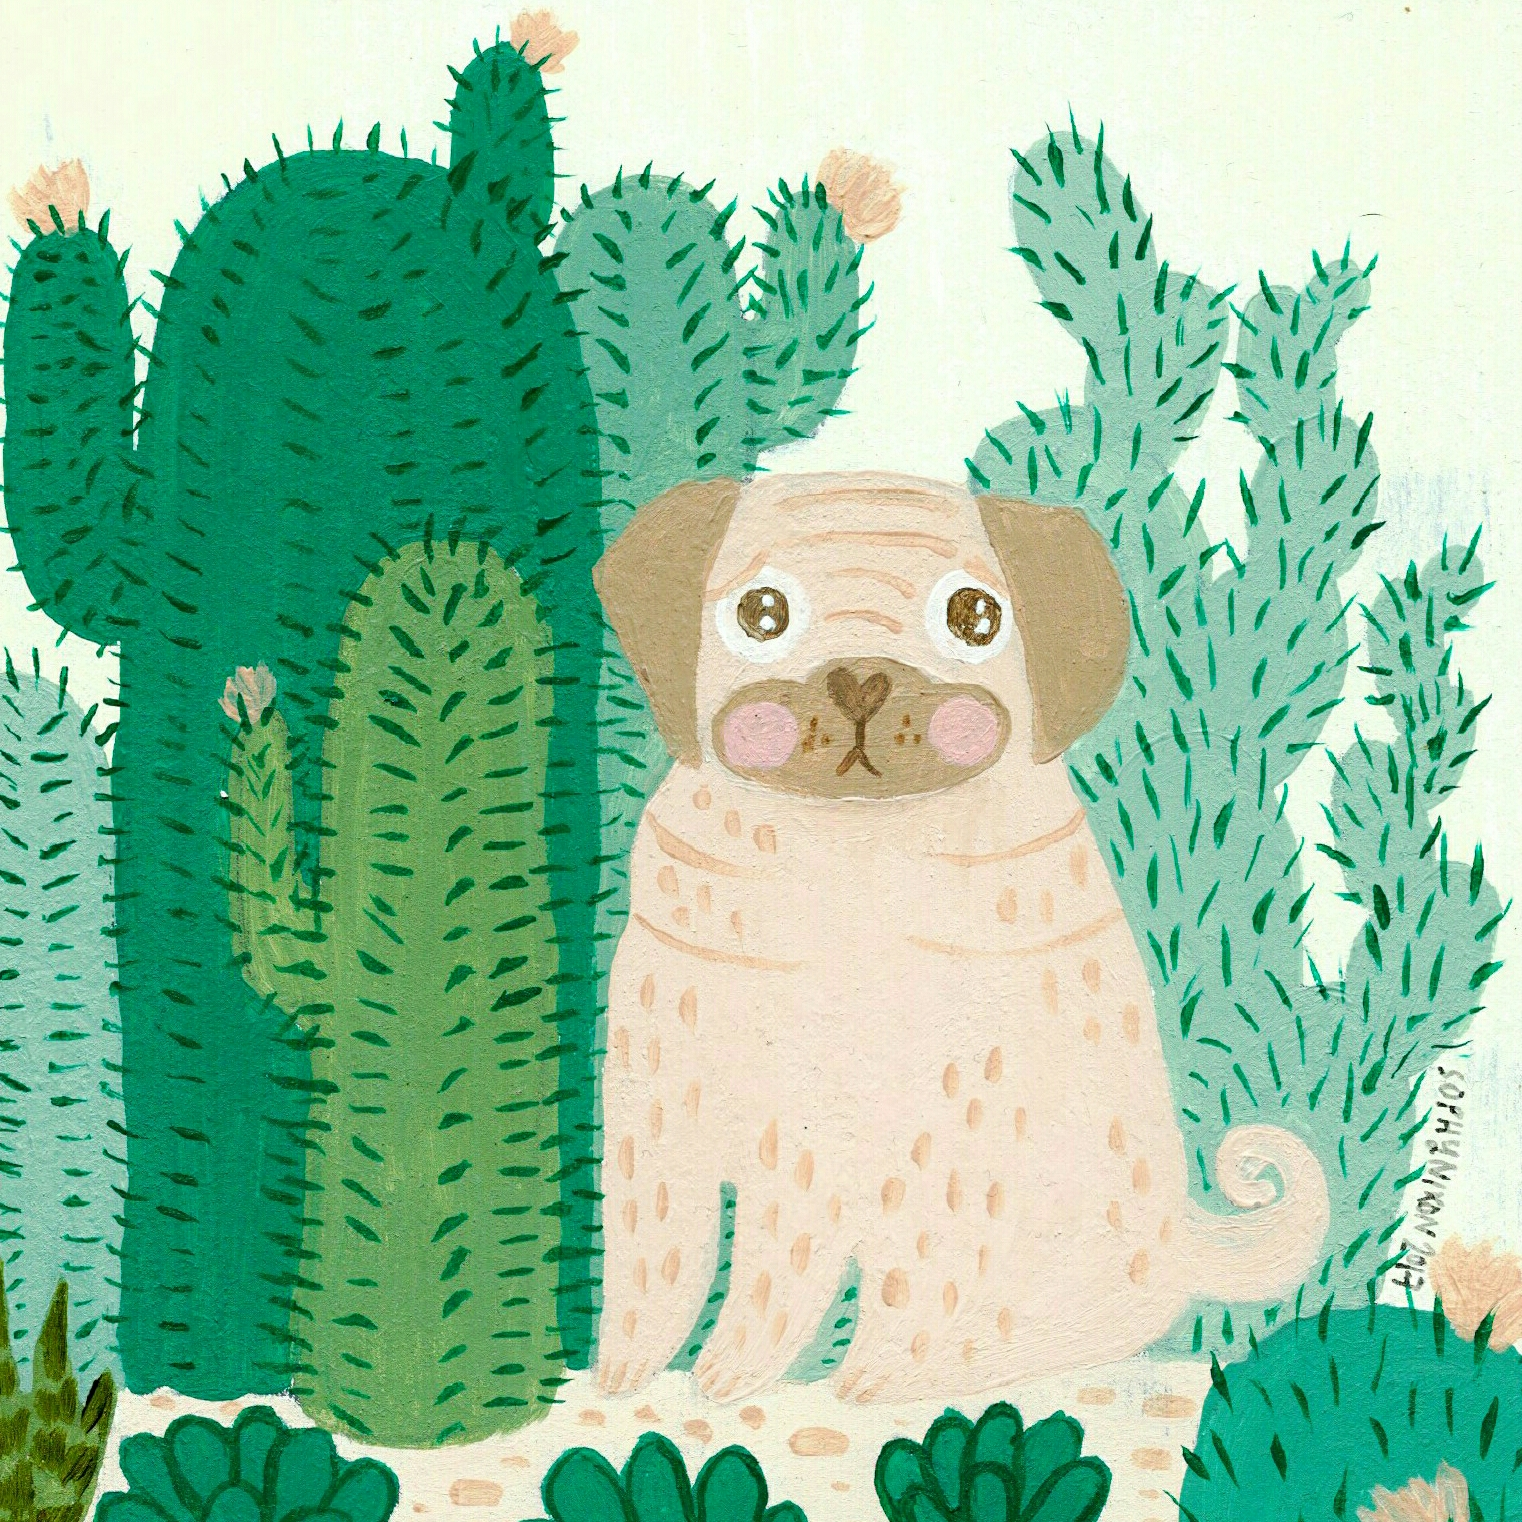 Pug and Cacti by Sophy Nixon 2017